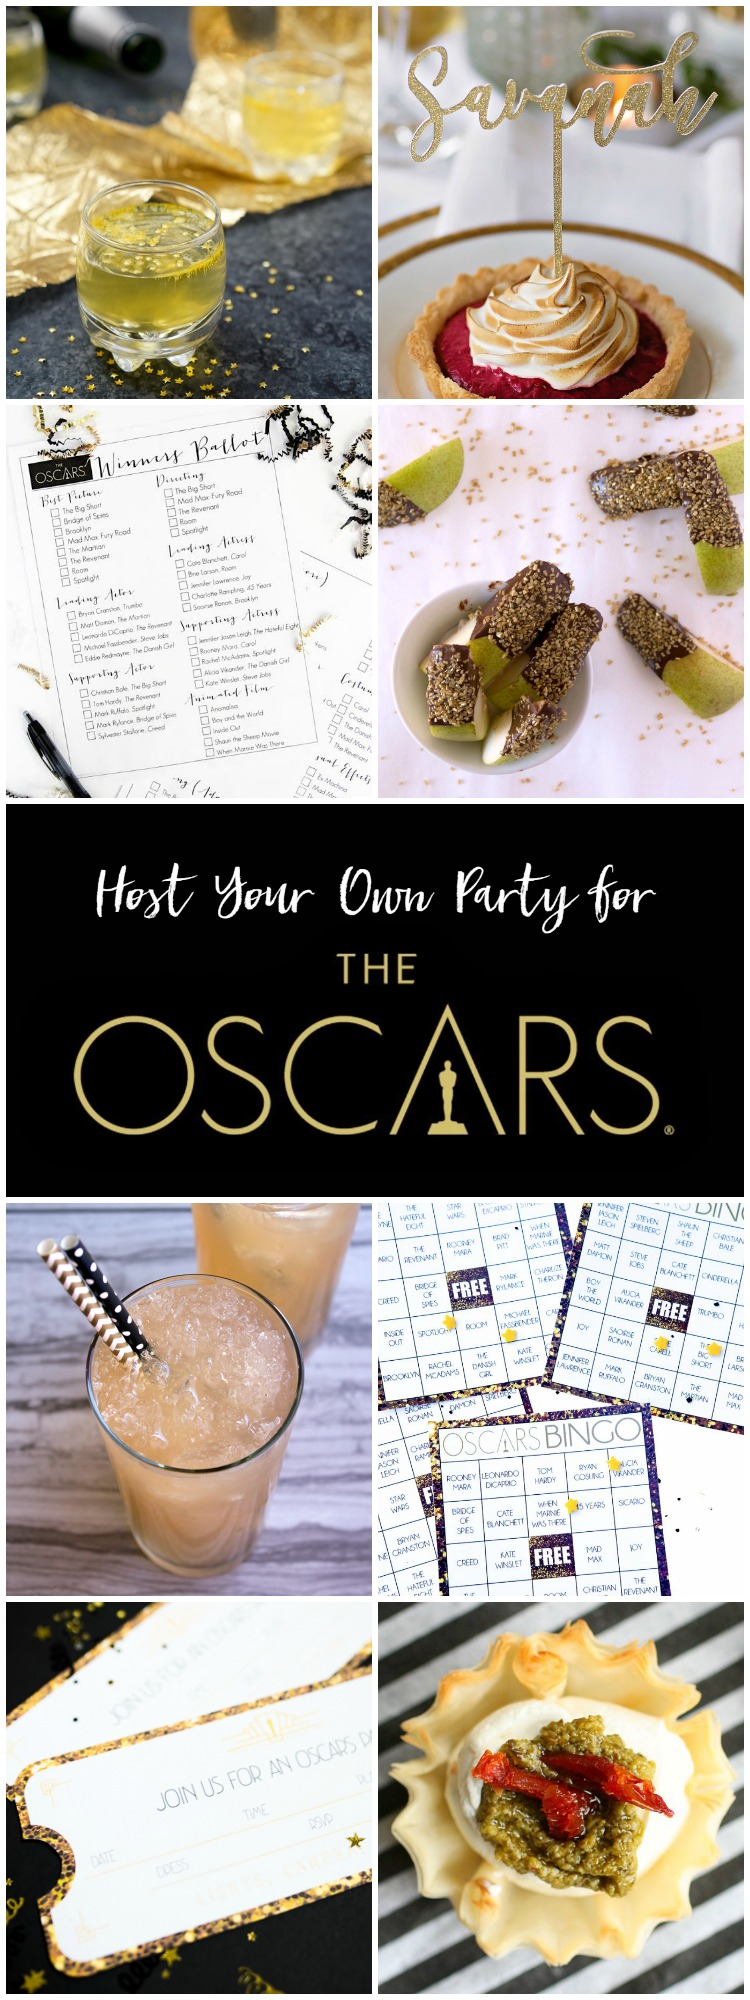 Oscars party recipes and crafts